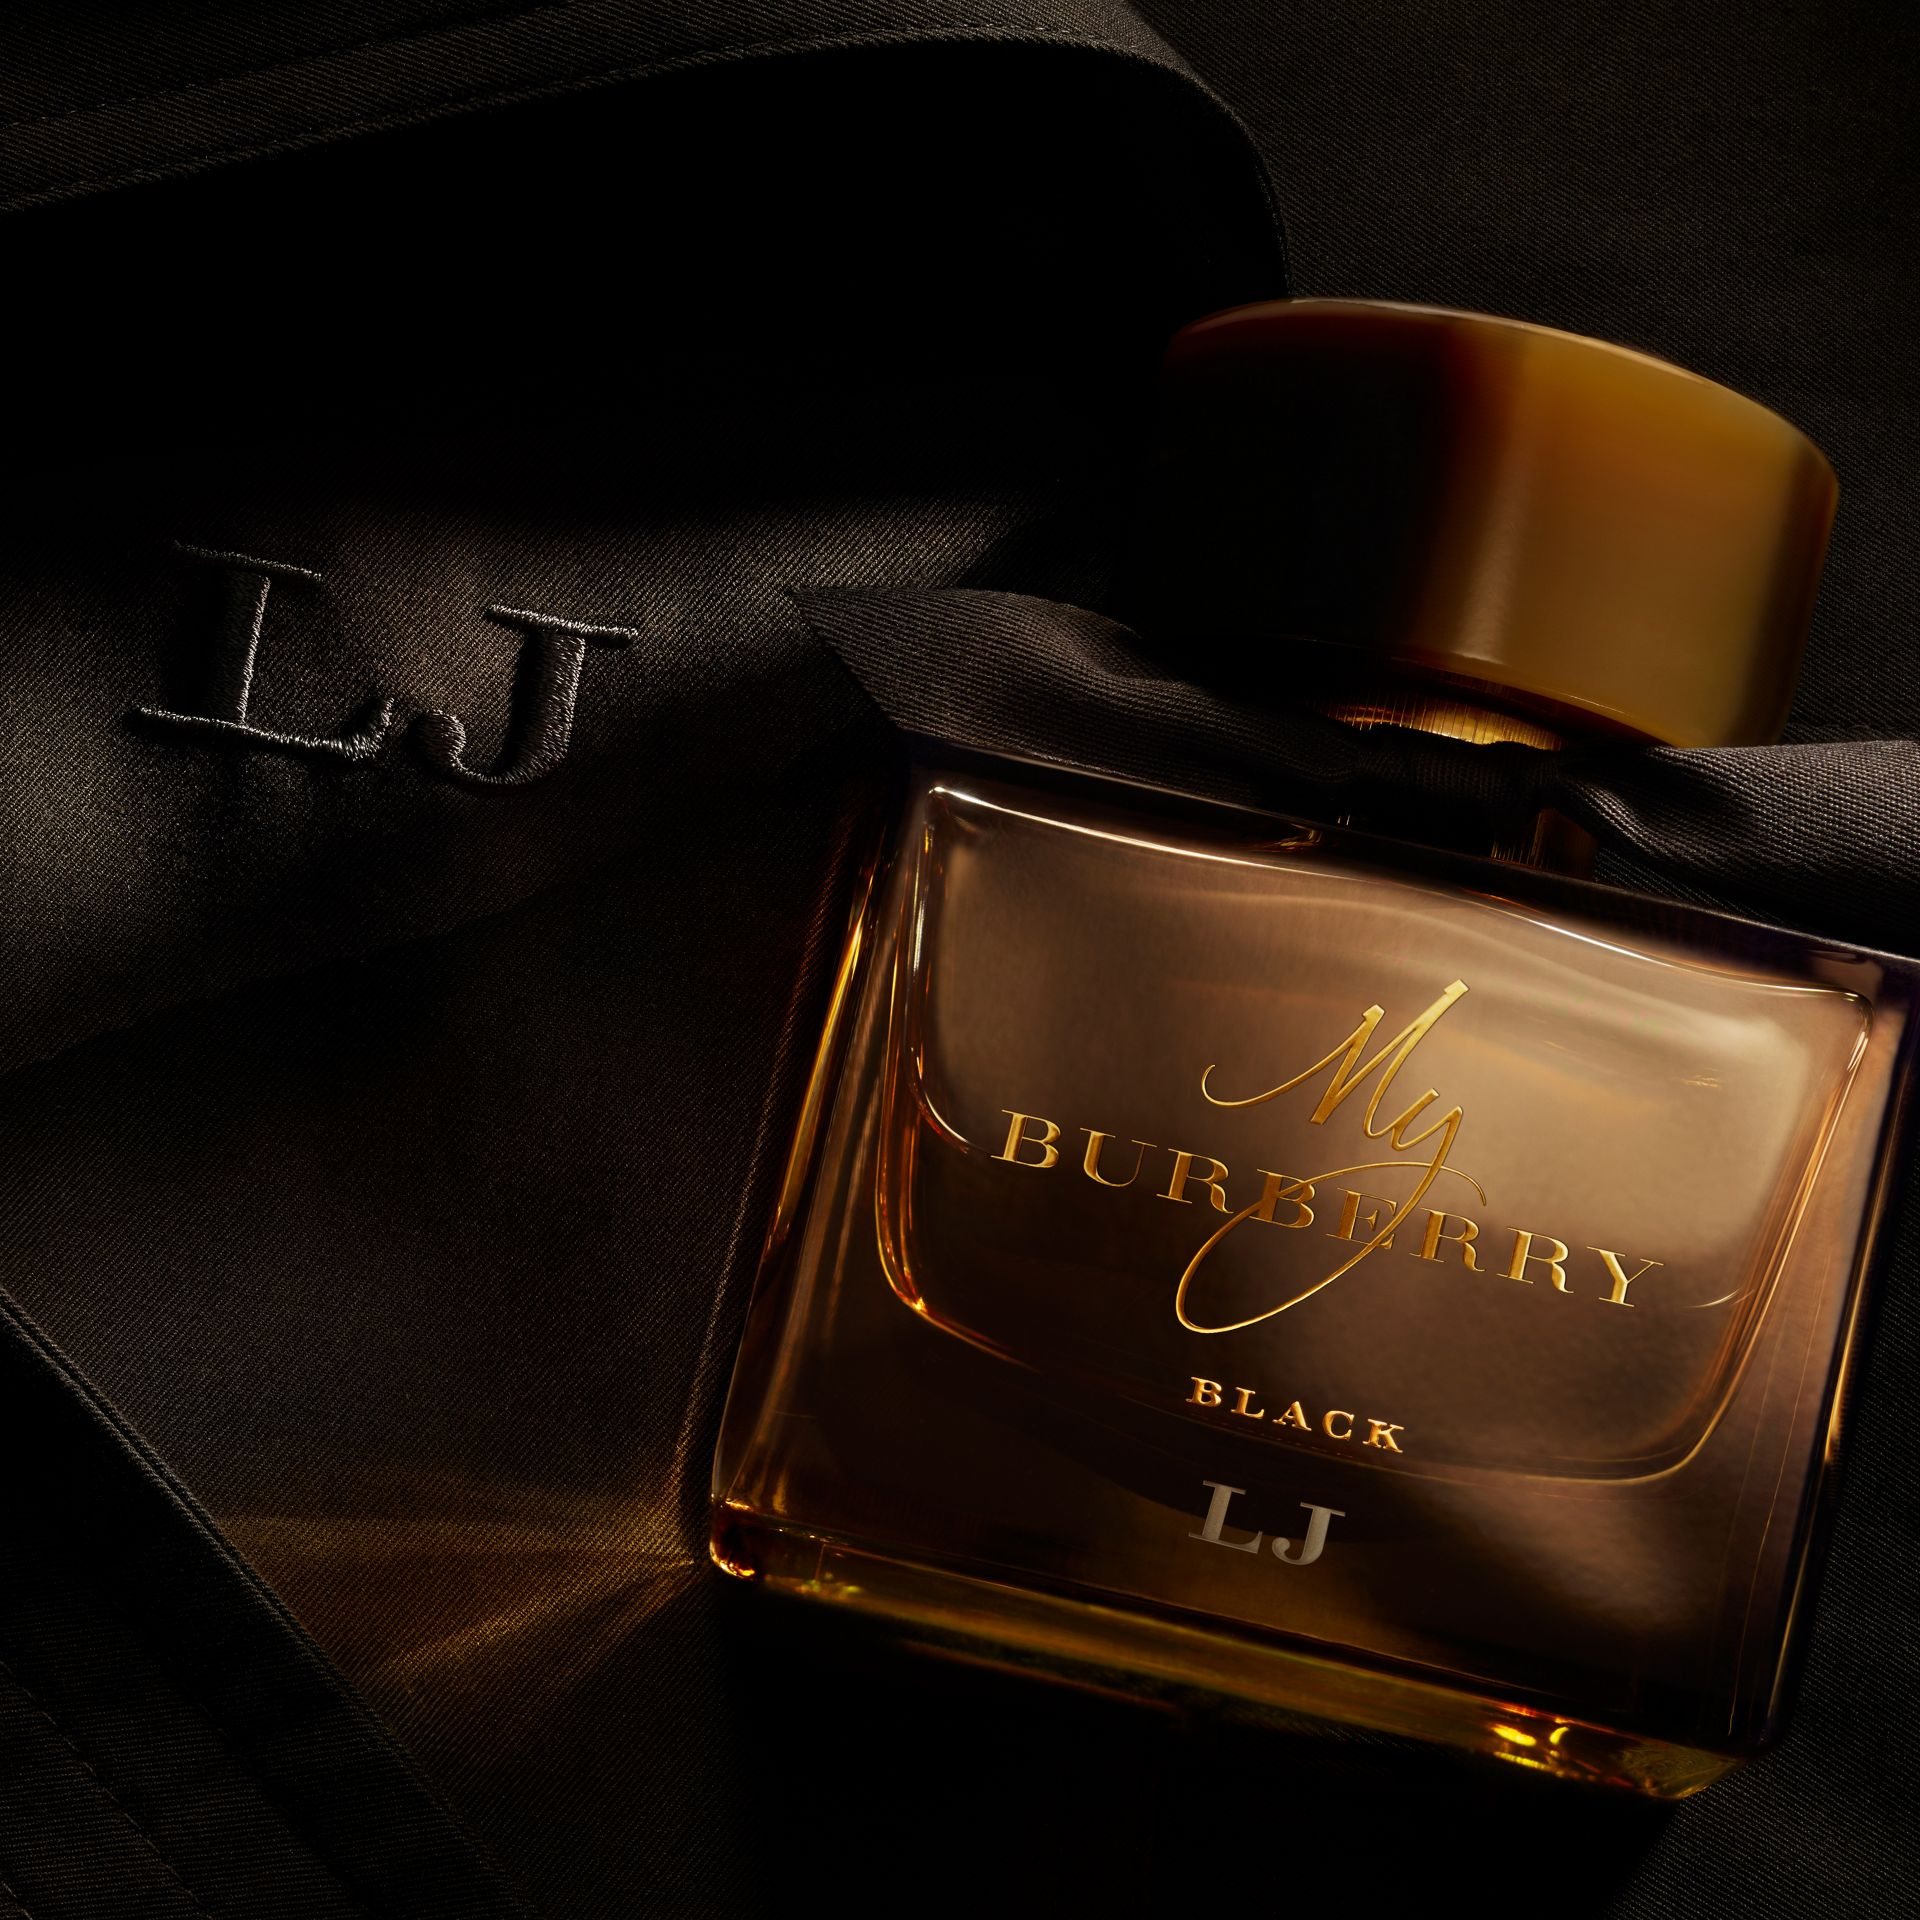 Parfum My Burberry Black 50 ml - photo de la galerie 4